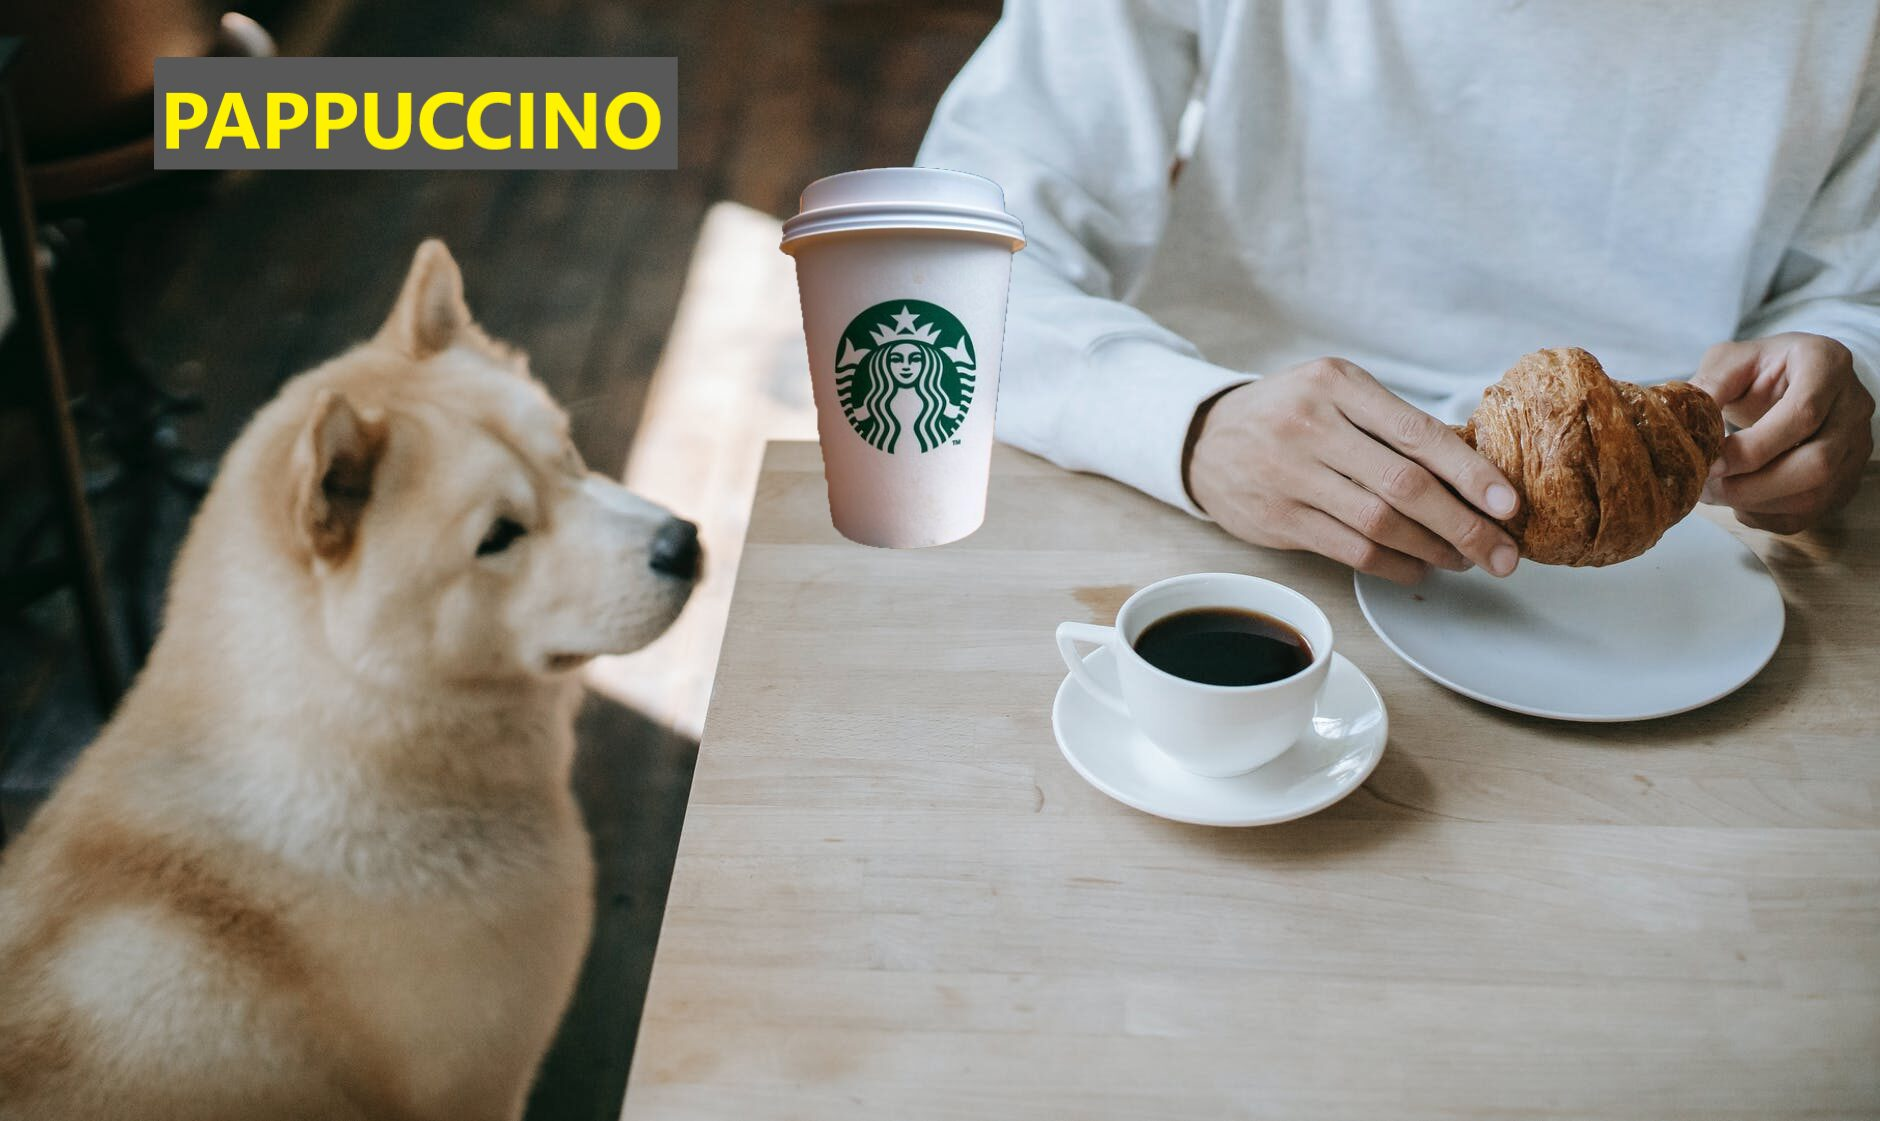 Dog looking at Pappuccino